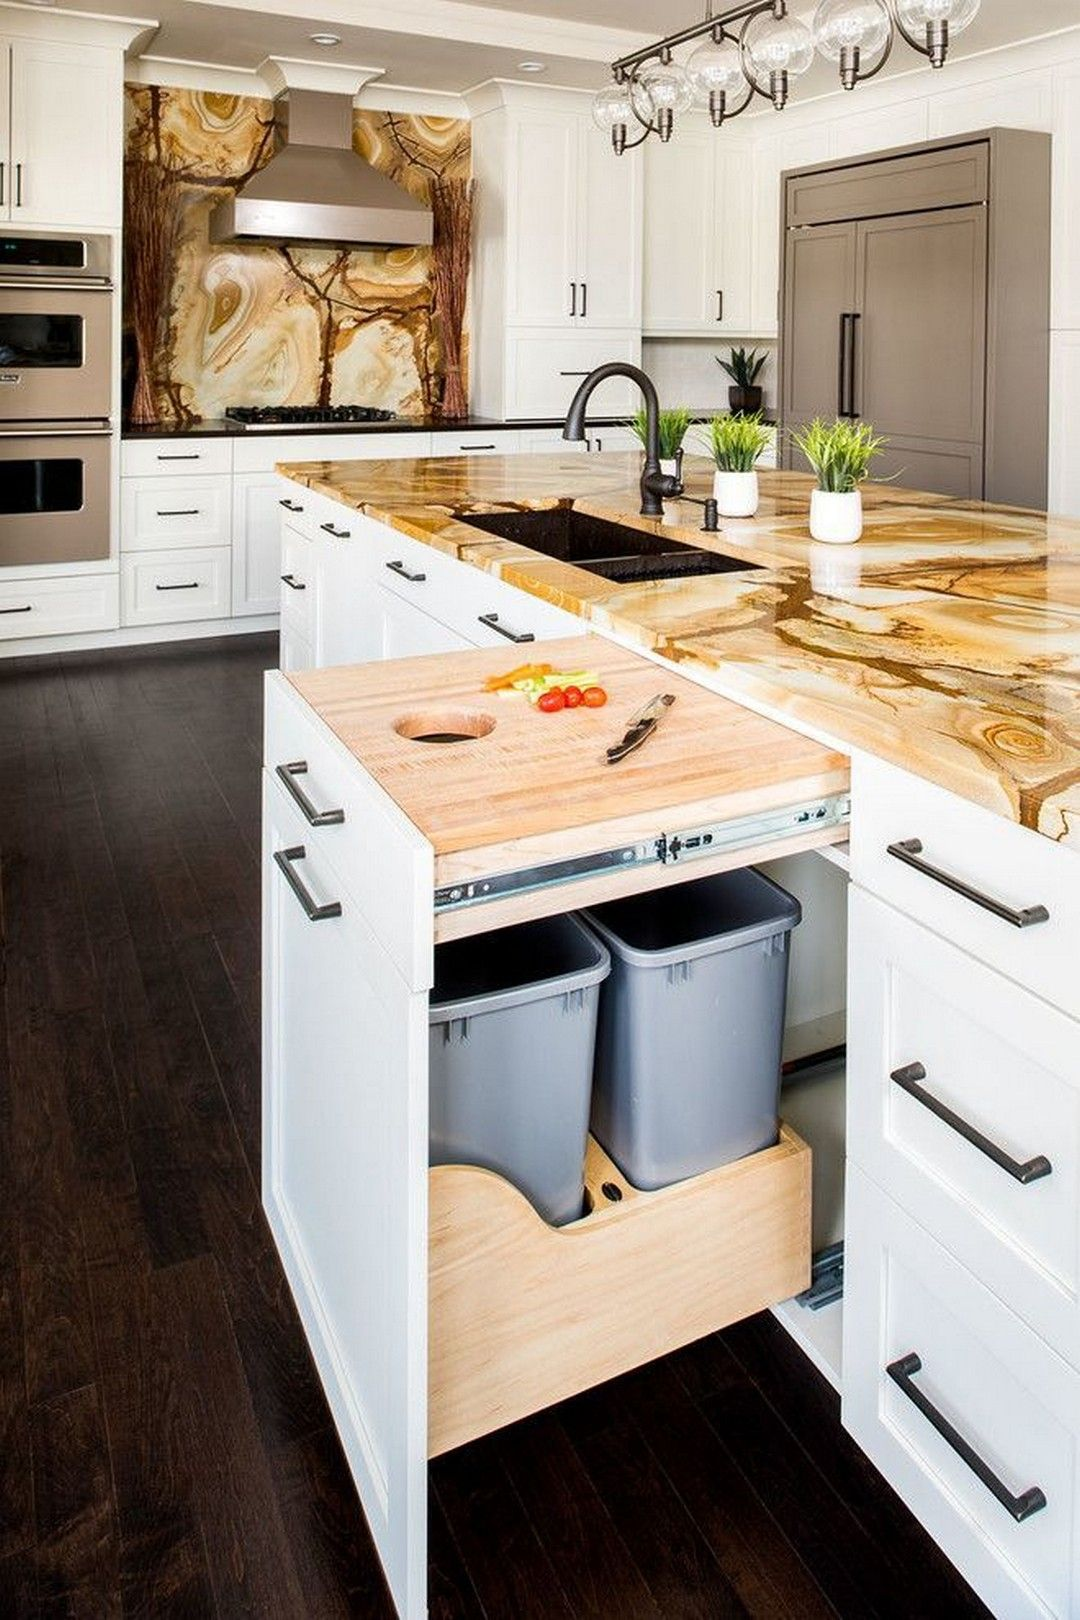 27 Functional And Inspired Kitchen Island Ideas And Designs Transitional Kitchen Design Kitchen Remodel Small Farmhouse Kitchen Remodel